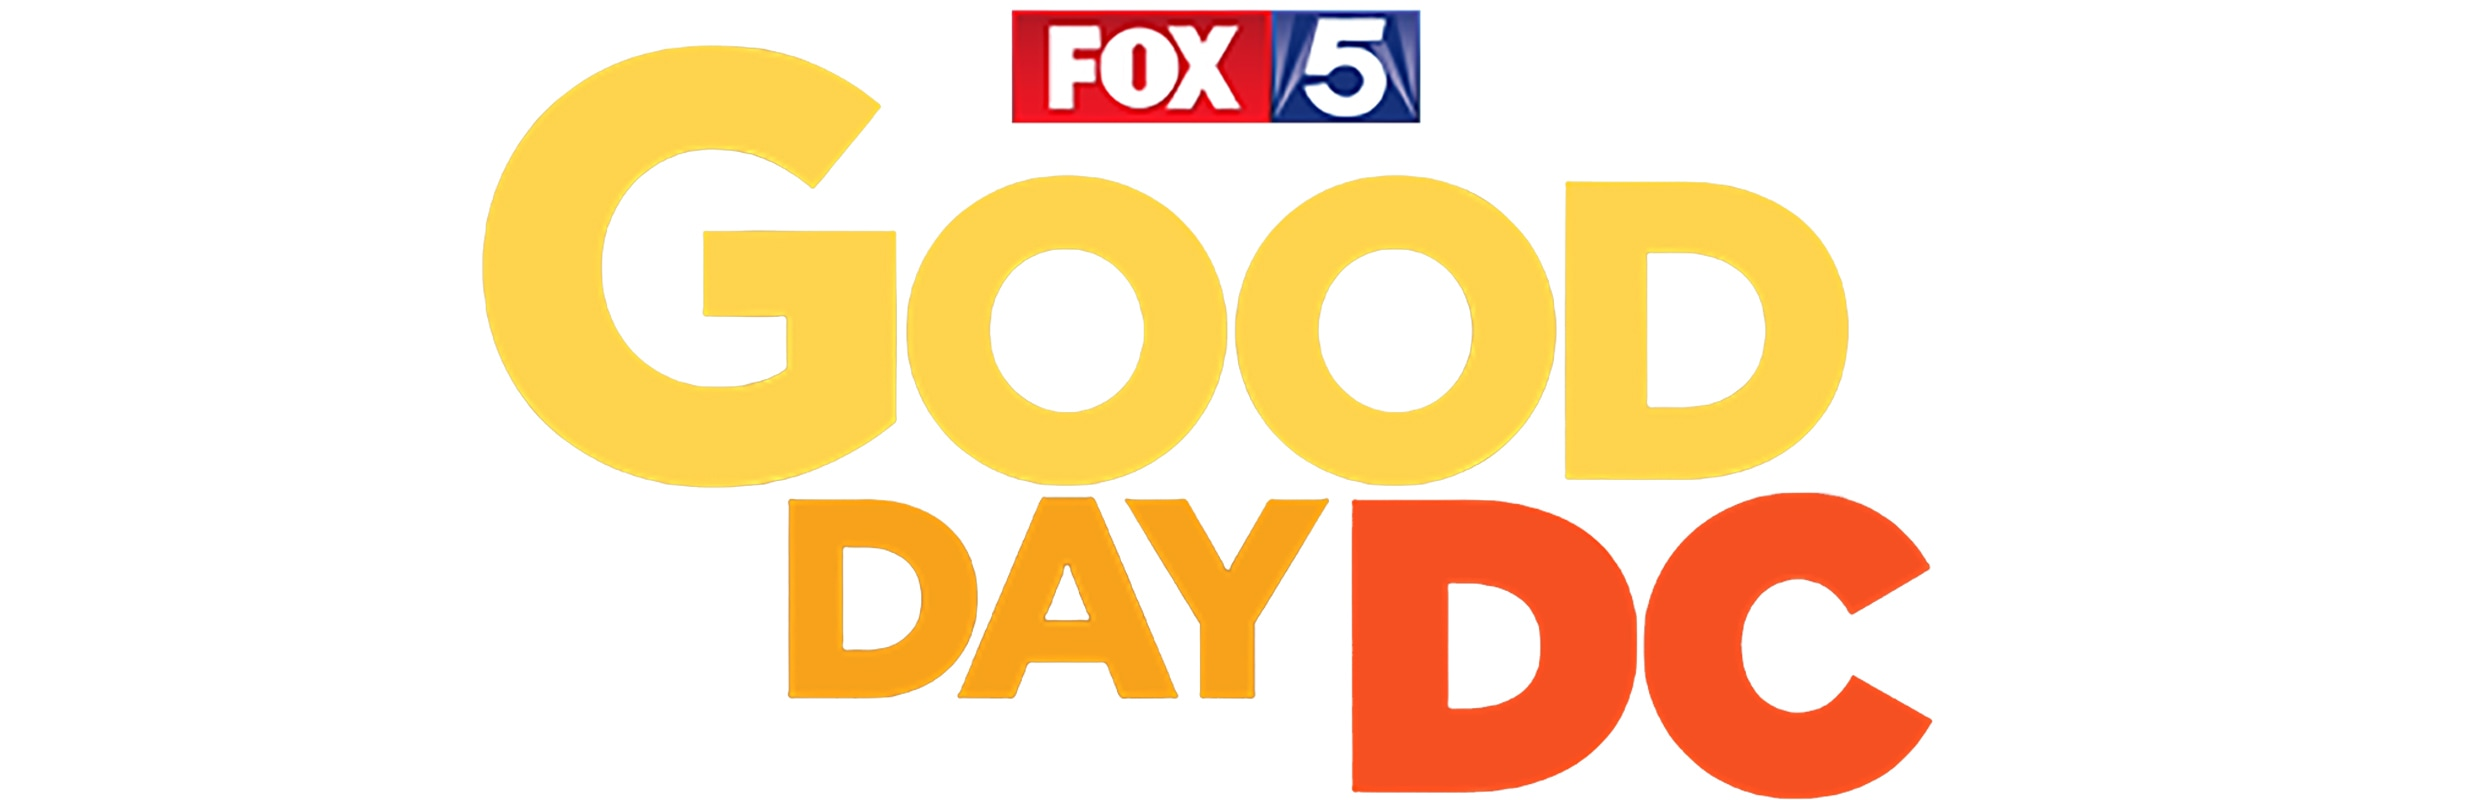 Good day dc fox 5 selected